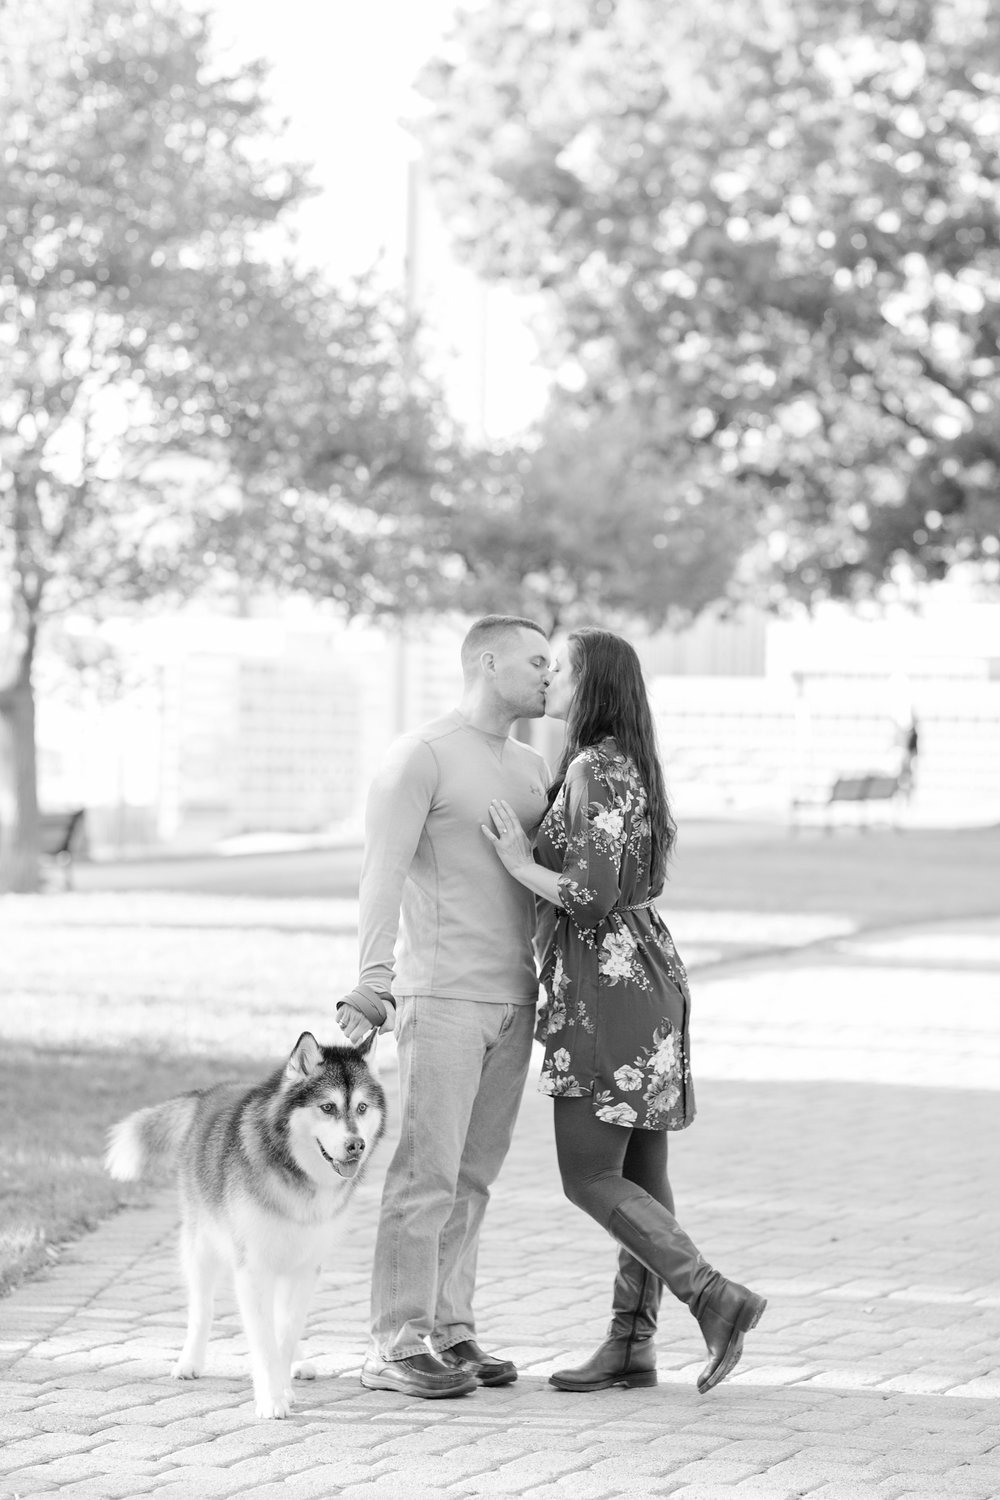 Mary Ellen & Tim Engagement-169_anna grace photography baltimore maryland engagement and wedding photographer downtown baltimore engagement photo.jpg